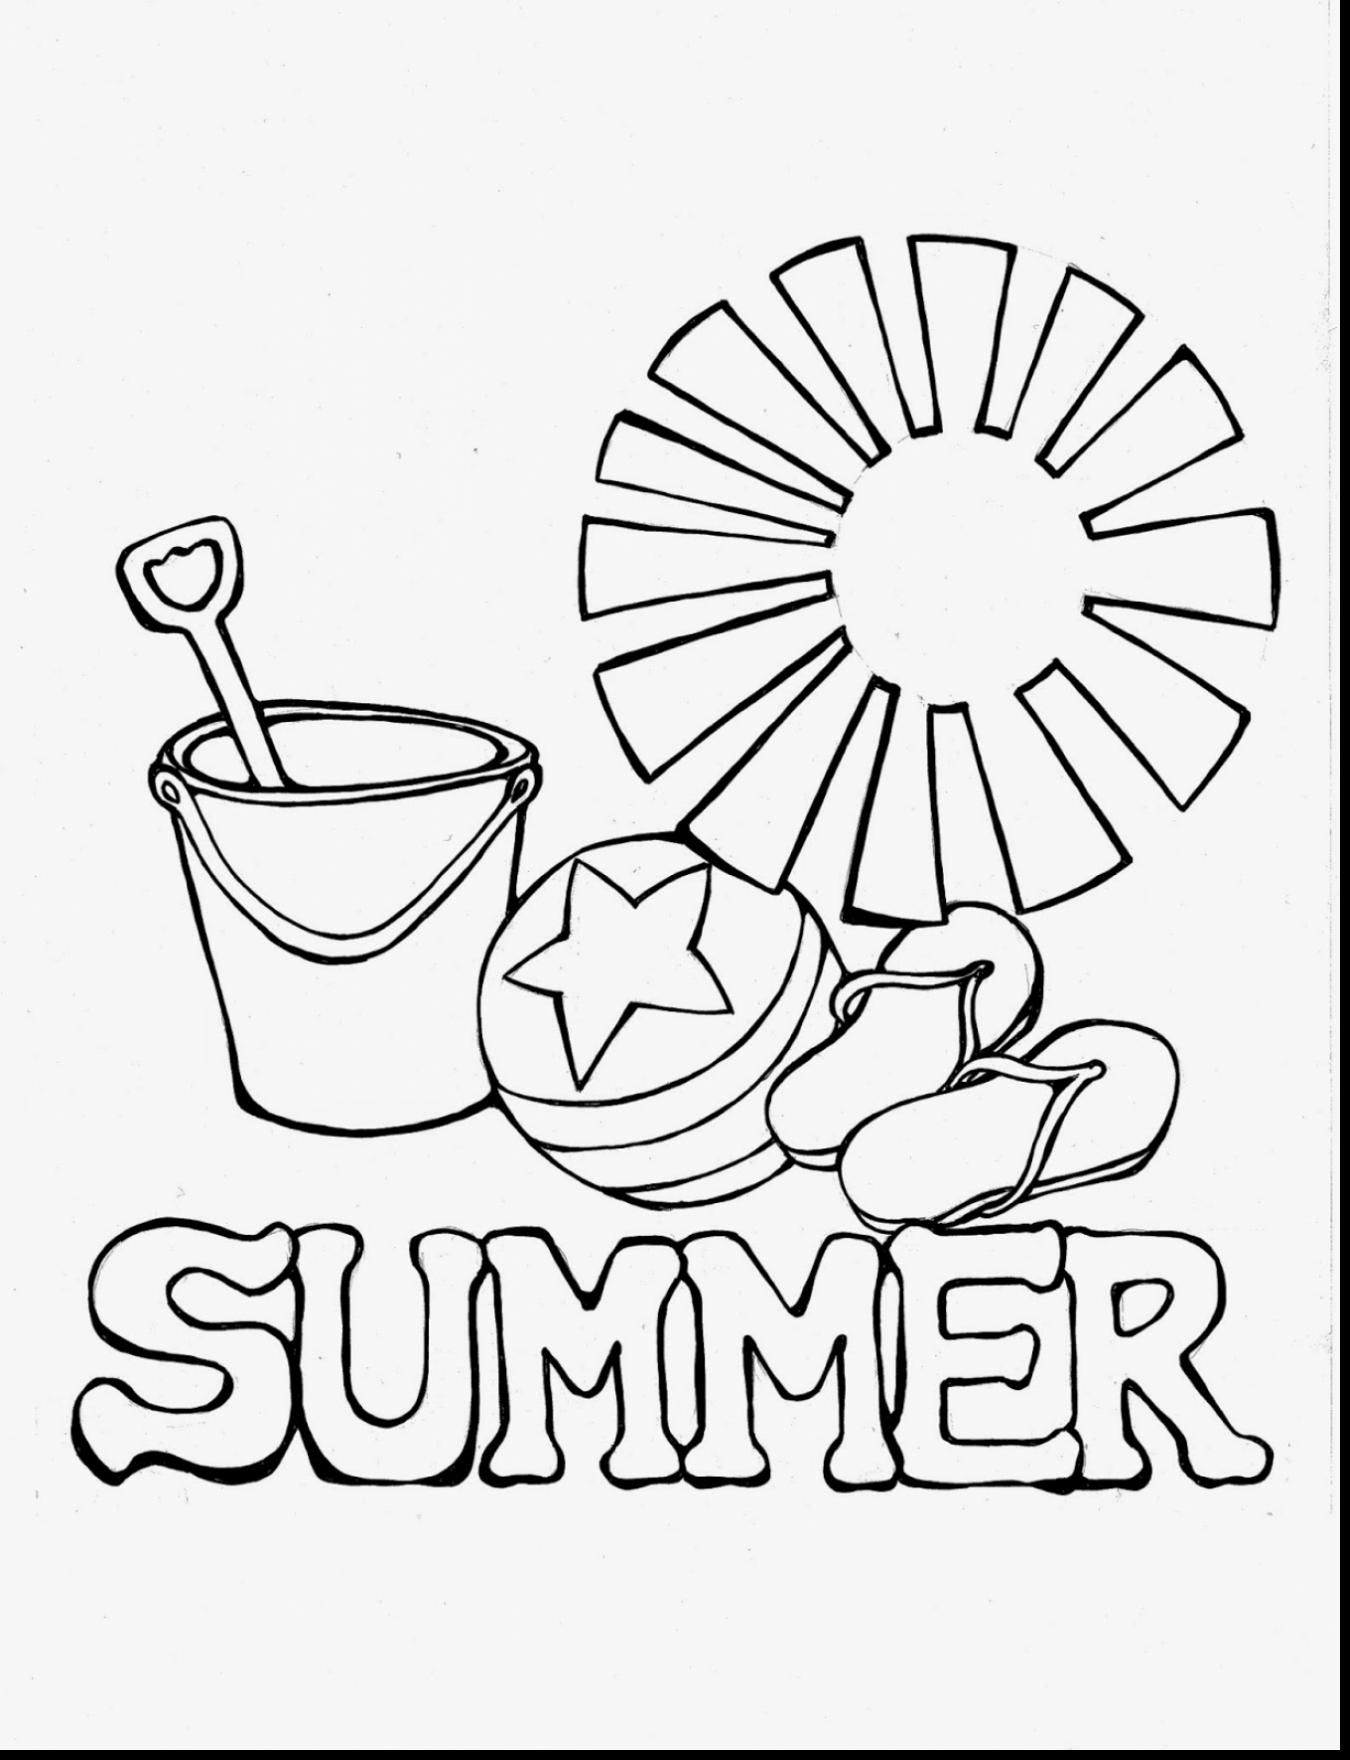 1350x1760 Challenge Summer Coloring Pages For Preschool Color Sheets